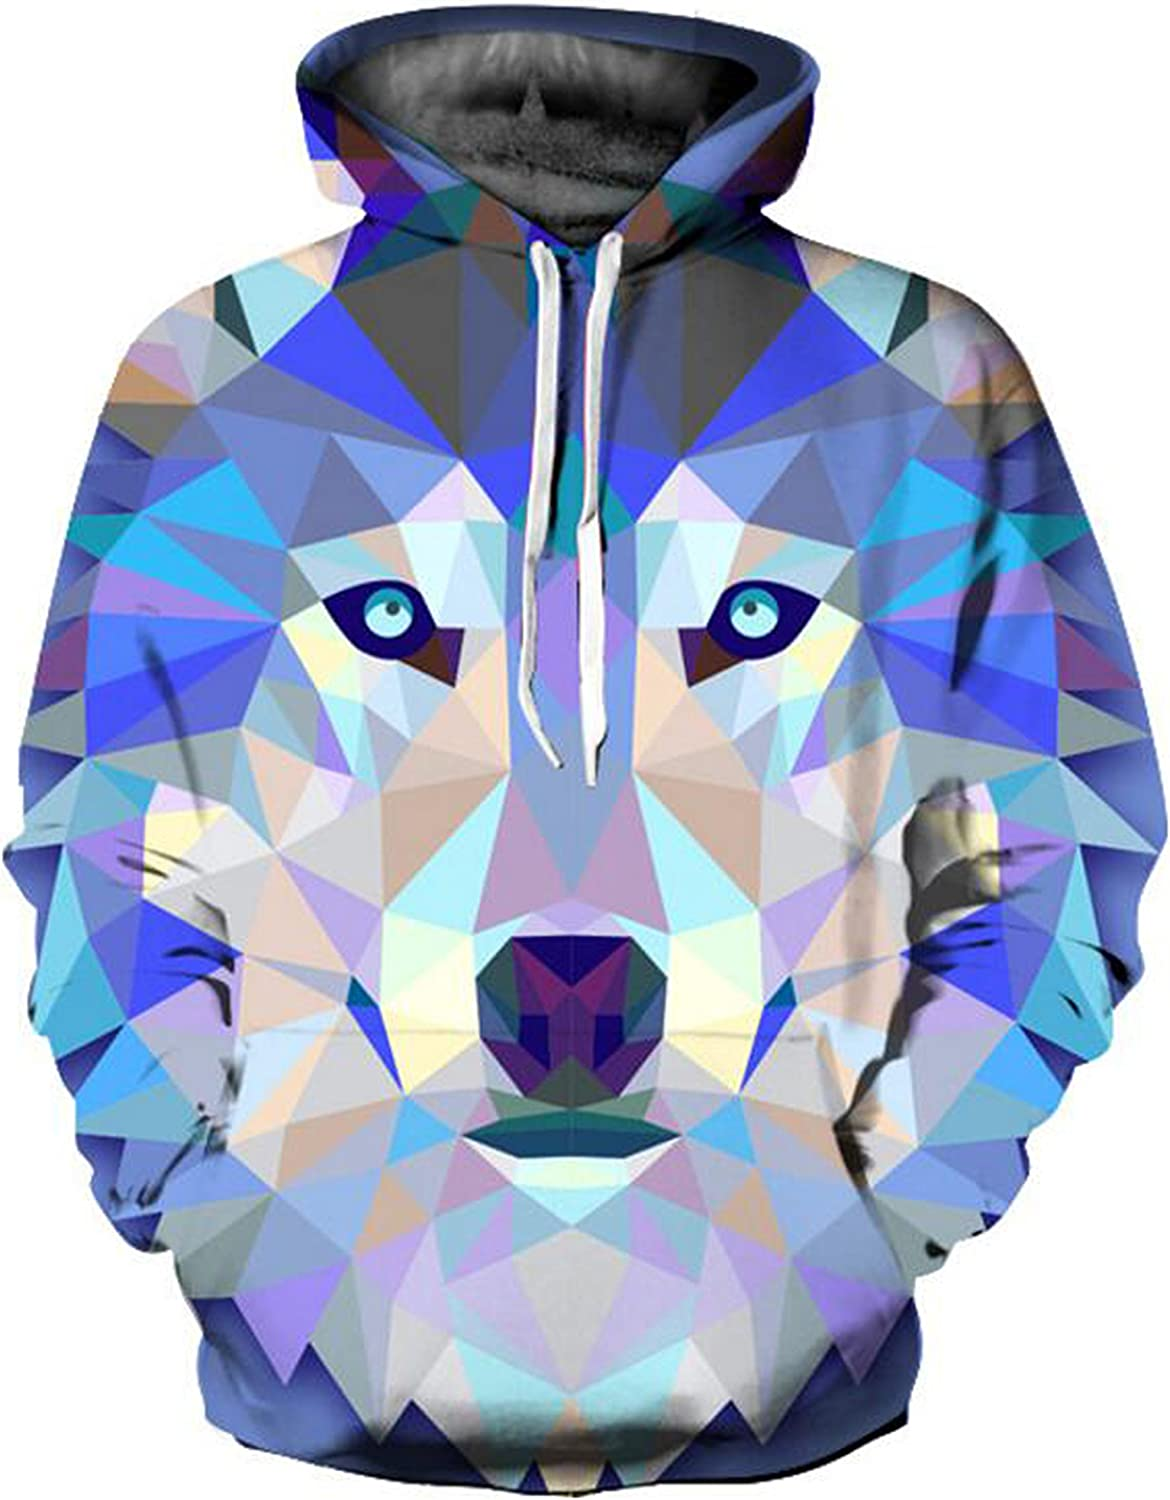 Sweatshirts for Men,Unisex Fashion 3D Digital Galaxy Pullover Hooded Hoodie Sweatshirt Athletic Casual with Pockets